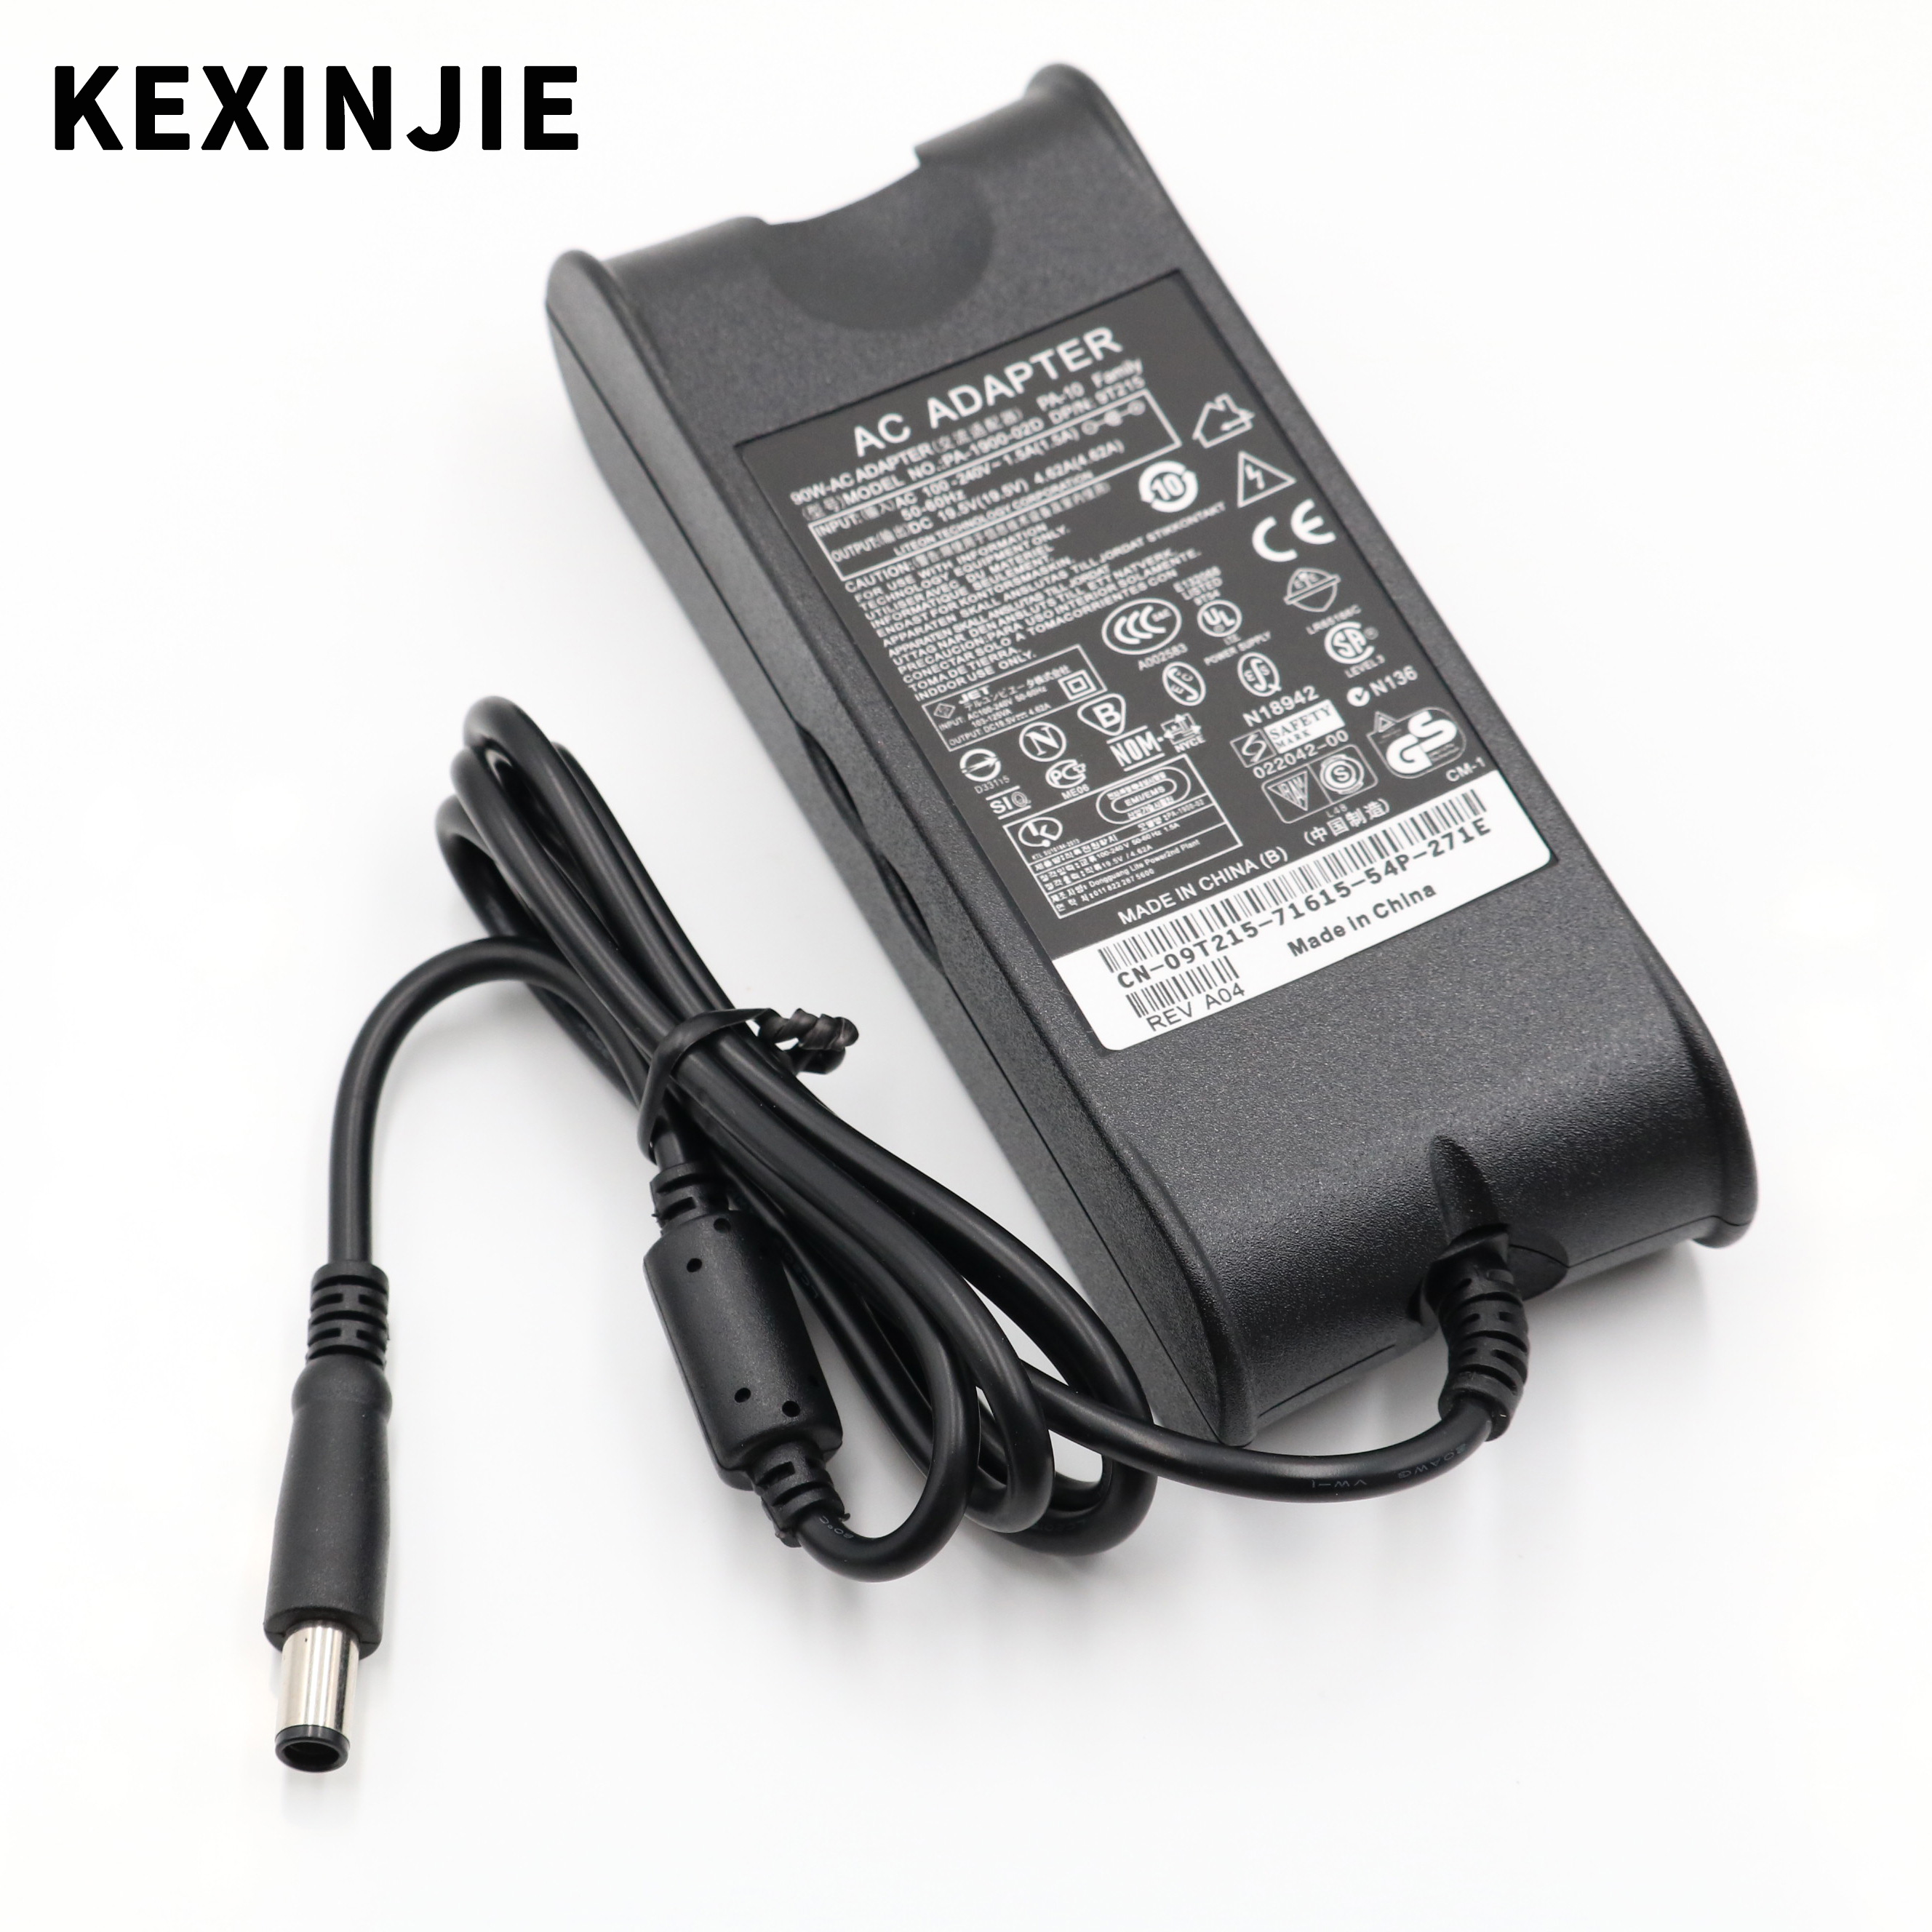 Original 90W AC Power Adapter PA-1900-01D3 PA-10 for Dell Latitude E6320 E6400